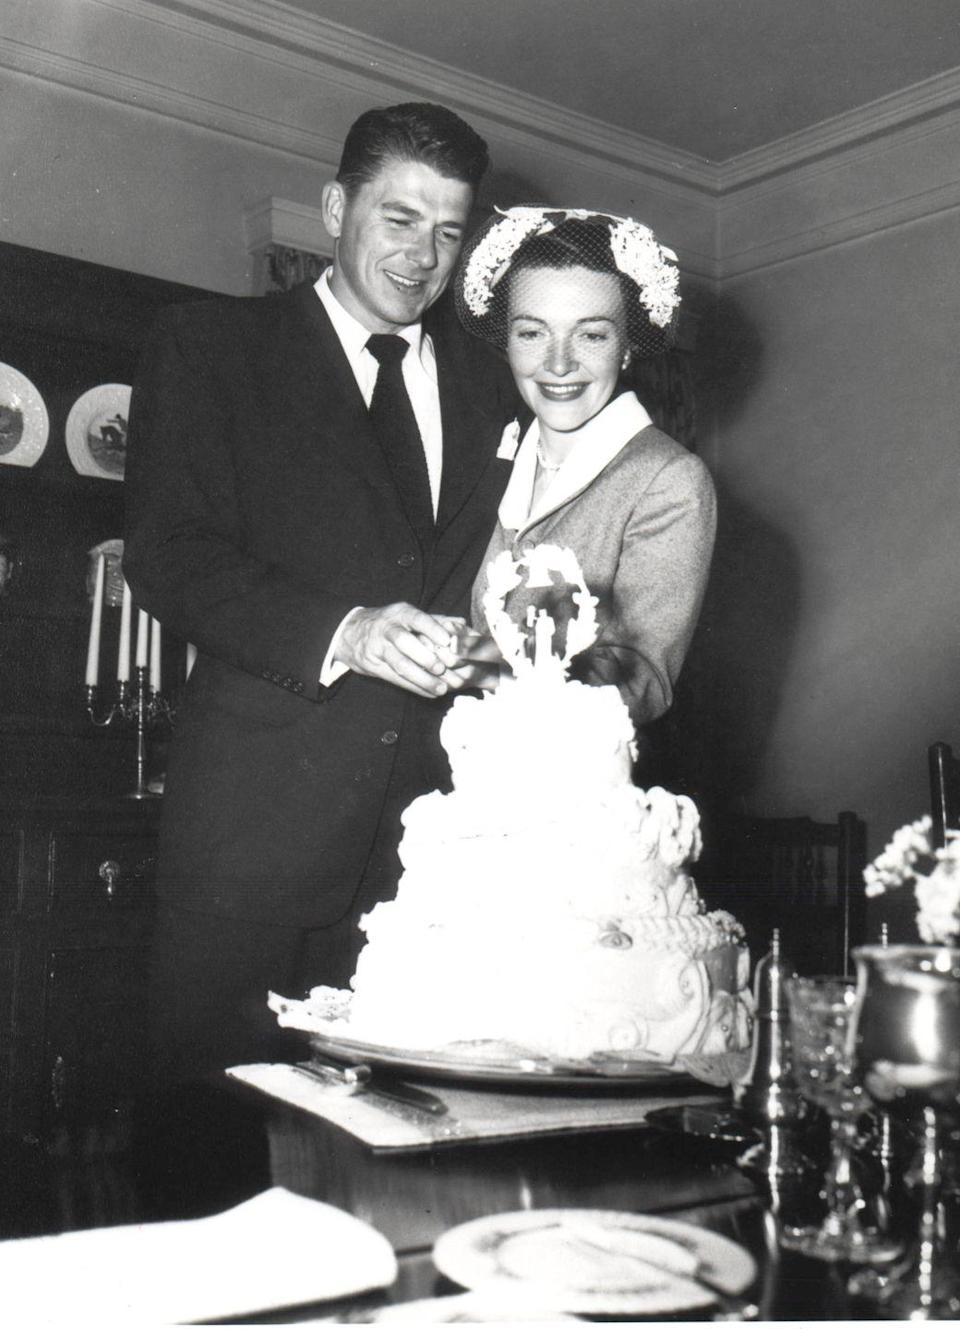 <p>Future president Ronald Reagan wed actress Nancy Davis on March 4, 1952. The couple, who said their vows at Little Brown Church of the Valley in Los Angeles, had a marriage that lasted 52 years, until Reagan's death in 2004.</p>